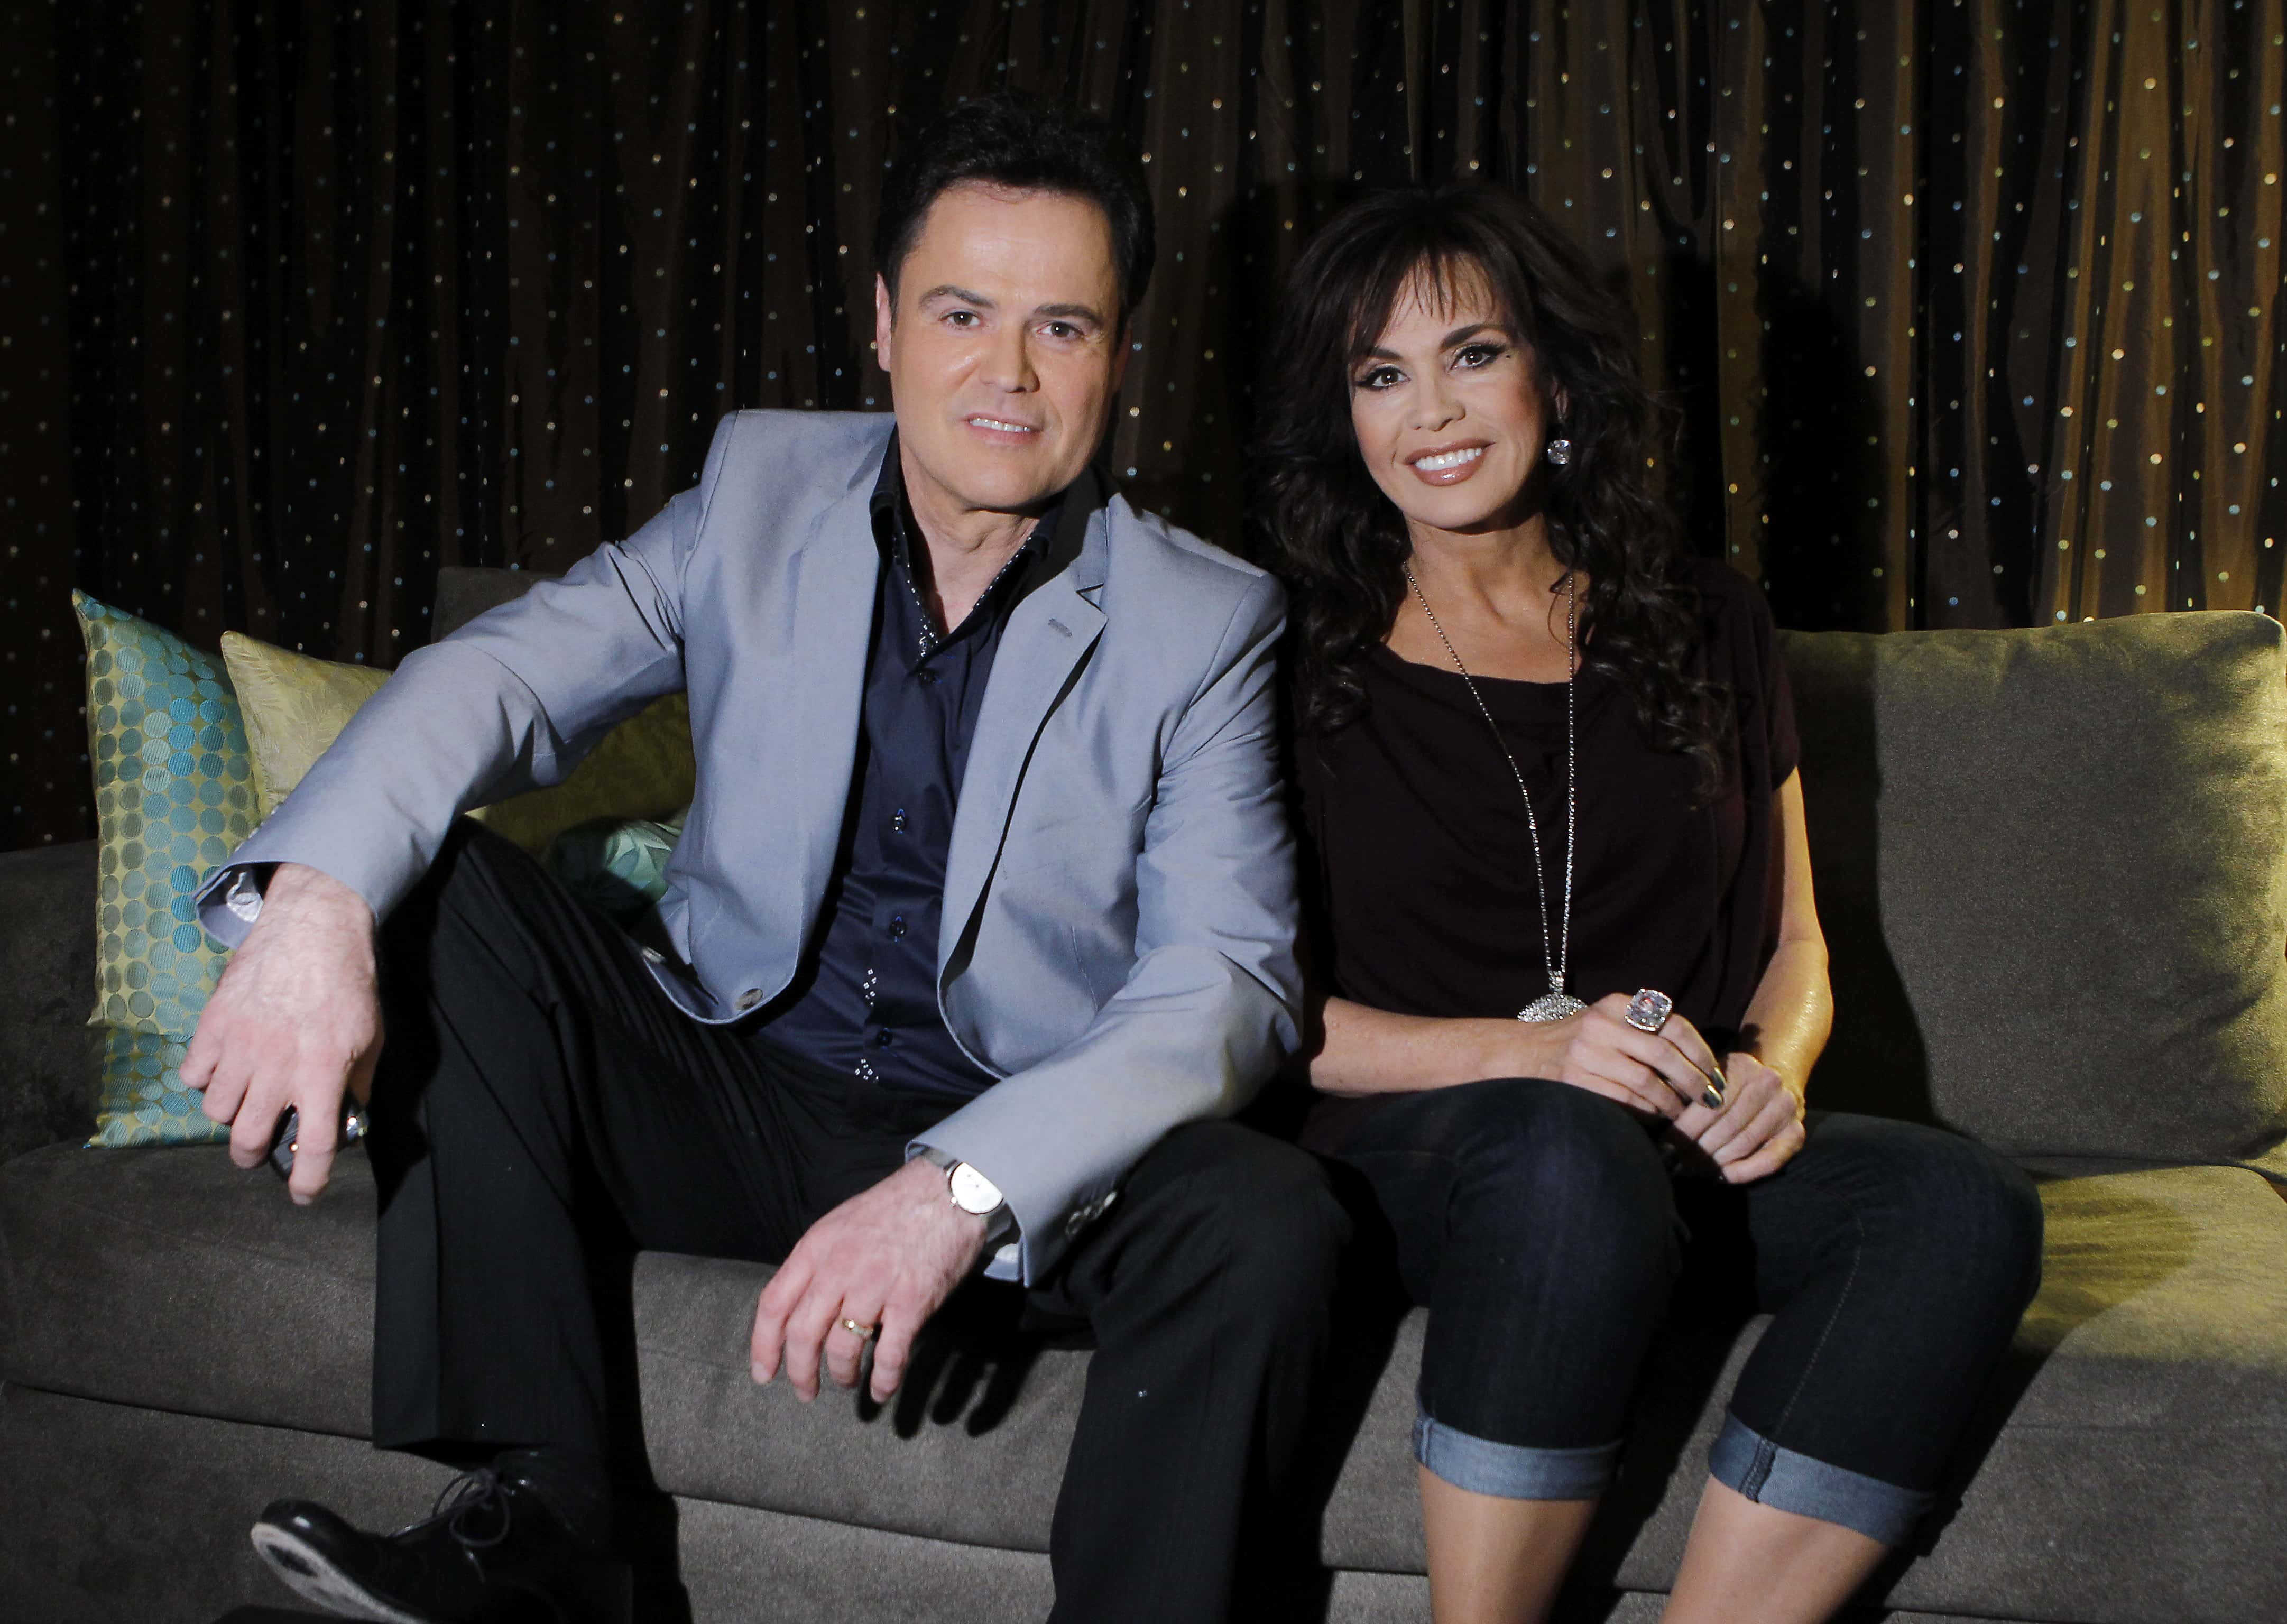 FILE - In this April 28, 2011 file photo, siblings Donny Osmond, left, and Marie Osmond pose backstage at their show at the Flamingo hotel and casino in Las Vegas. Donny and Marie Osmond will be singing at the Flamingo Las Vegas at least through the end of 2015. Caesars Entertainment Corp. announced Monday, Dec. 22, 2014, that the duo has signed on to keep performing at the hotel-casino through the end of next year. (AP Photo/Isaac Brekken, File)